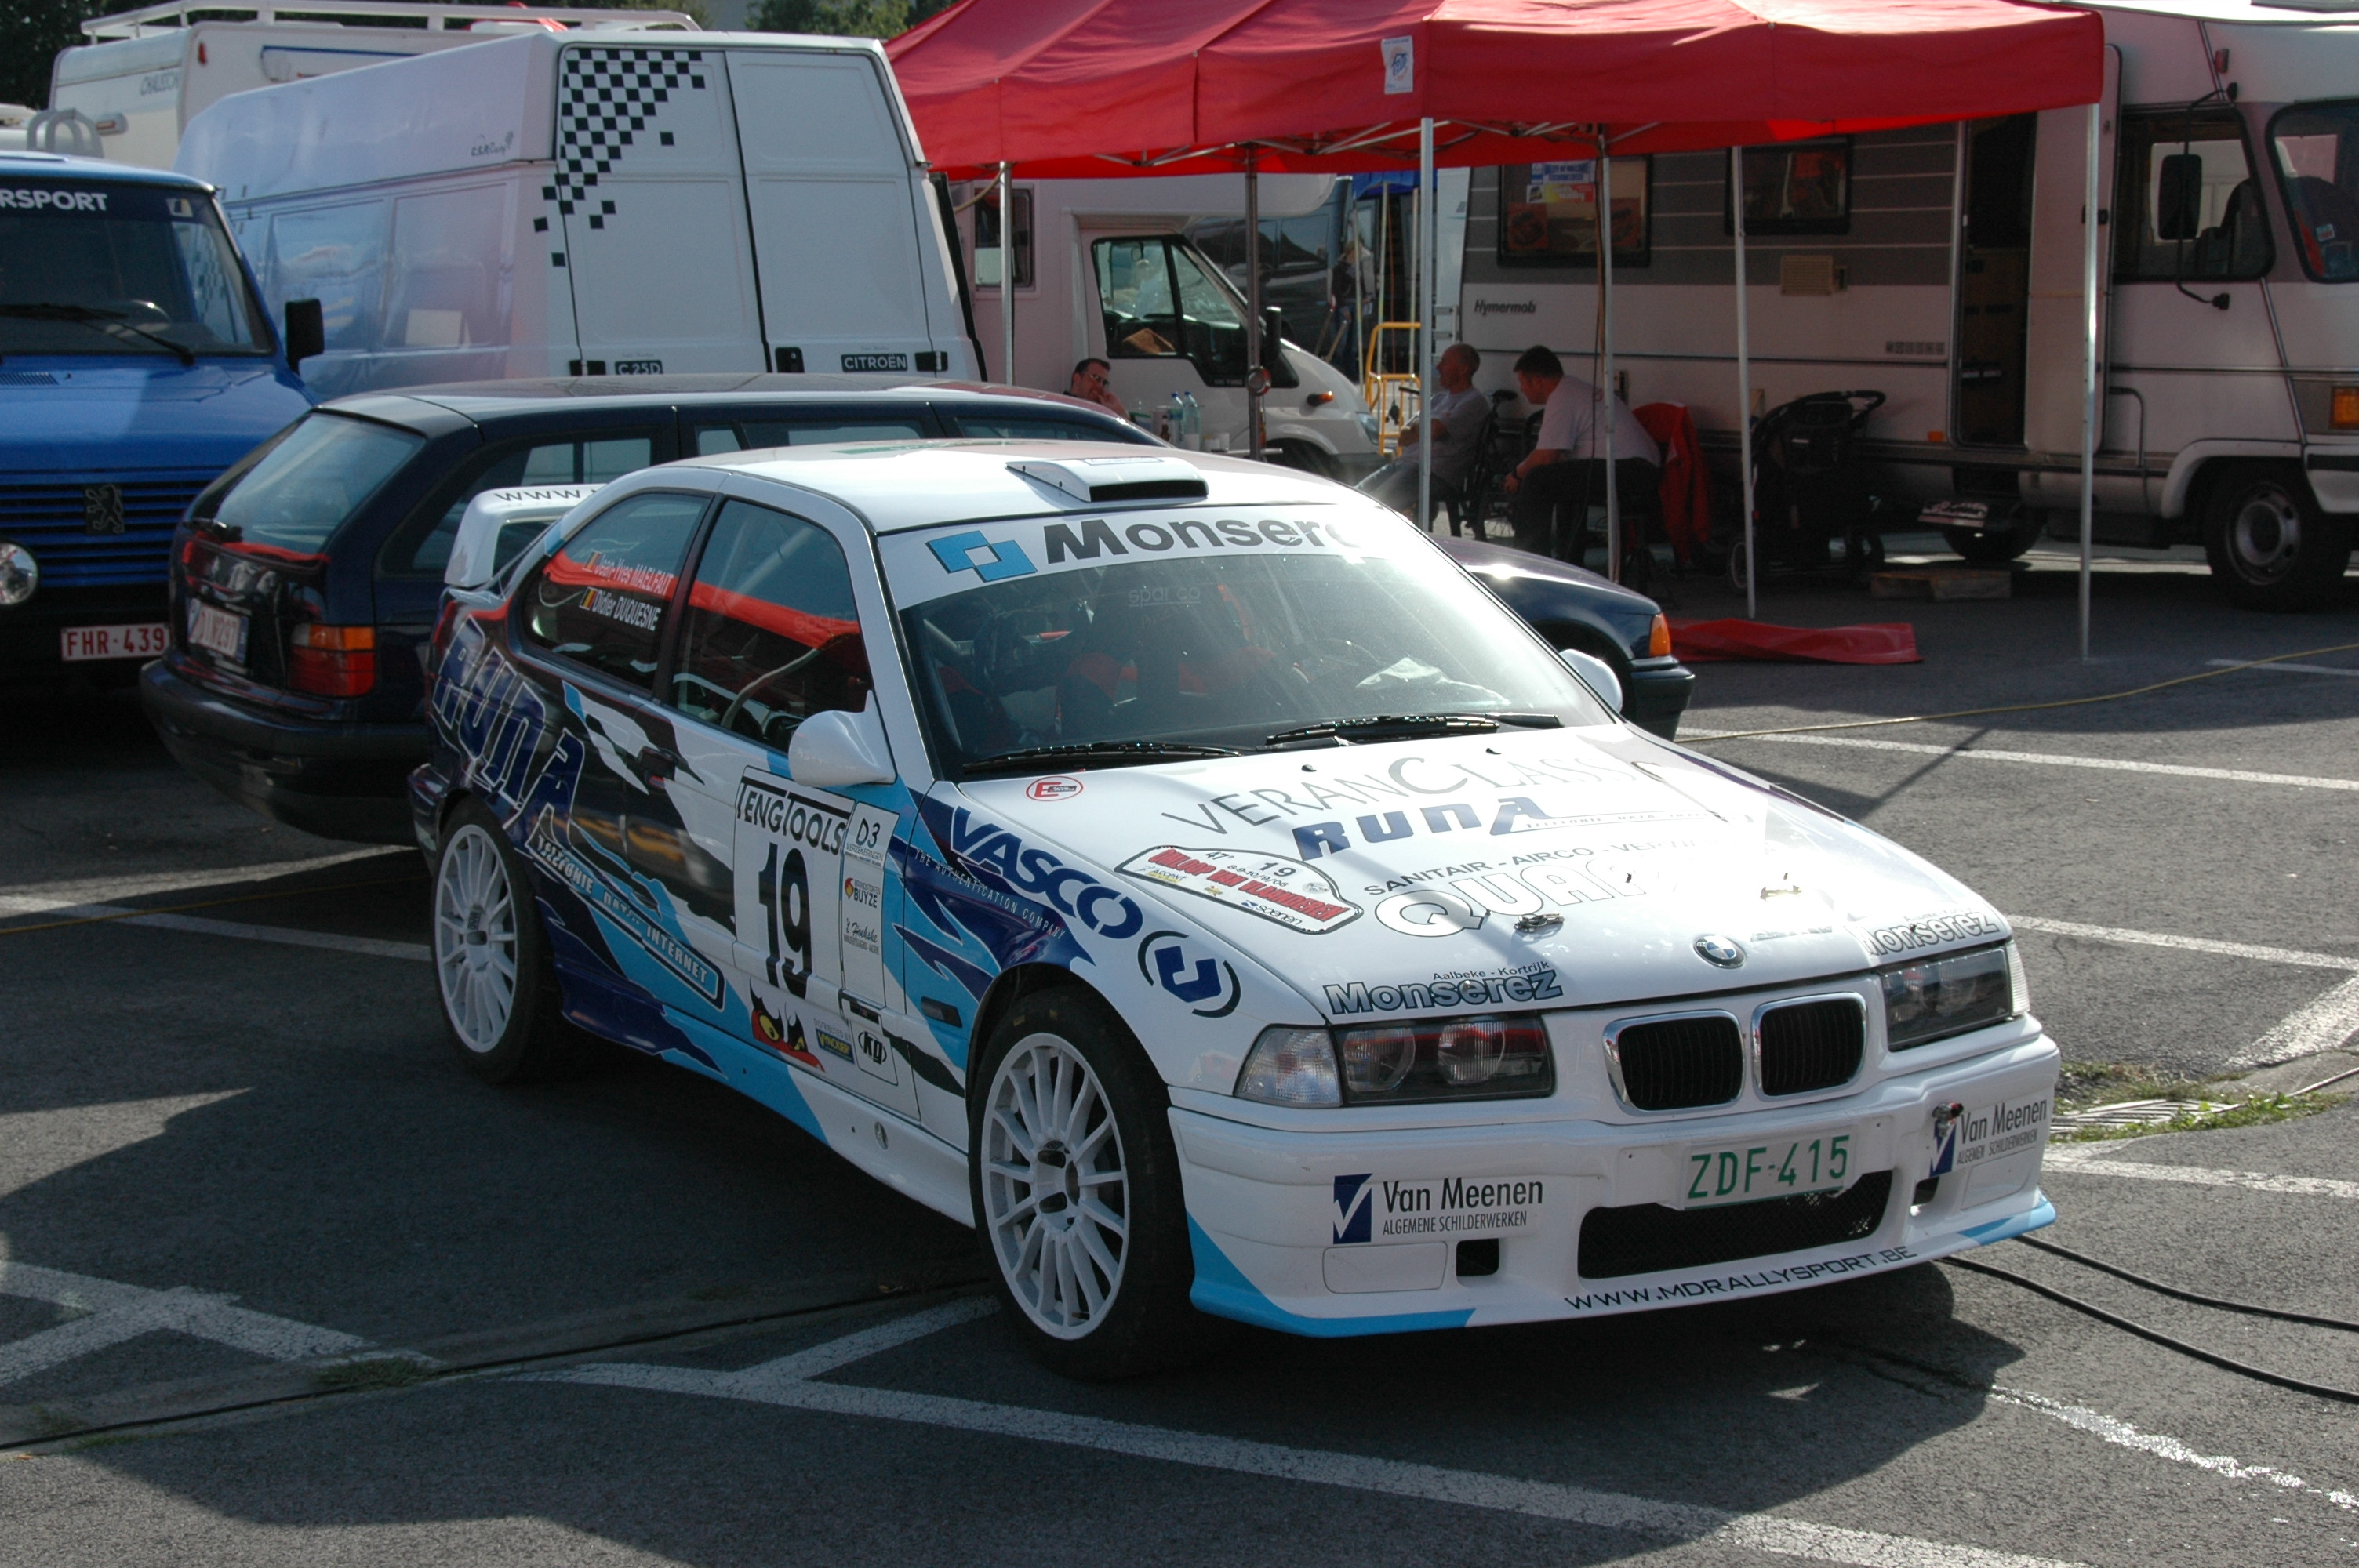 File:BMW Compact M3.jpg - Wikimedia Commons